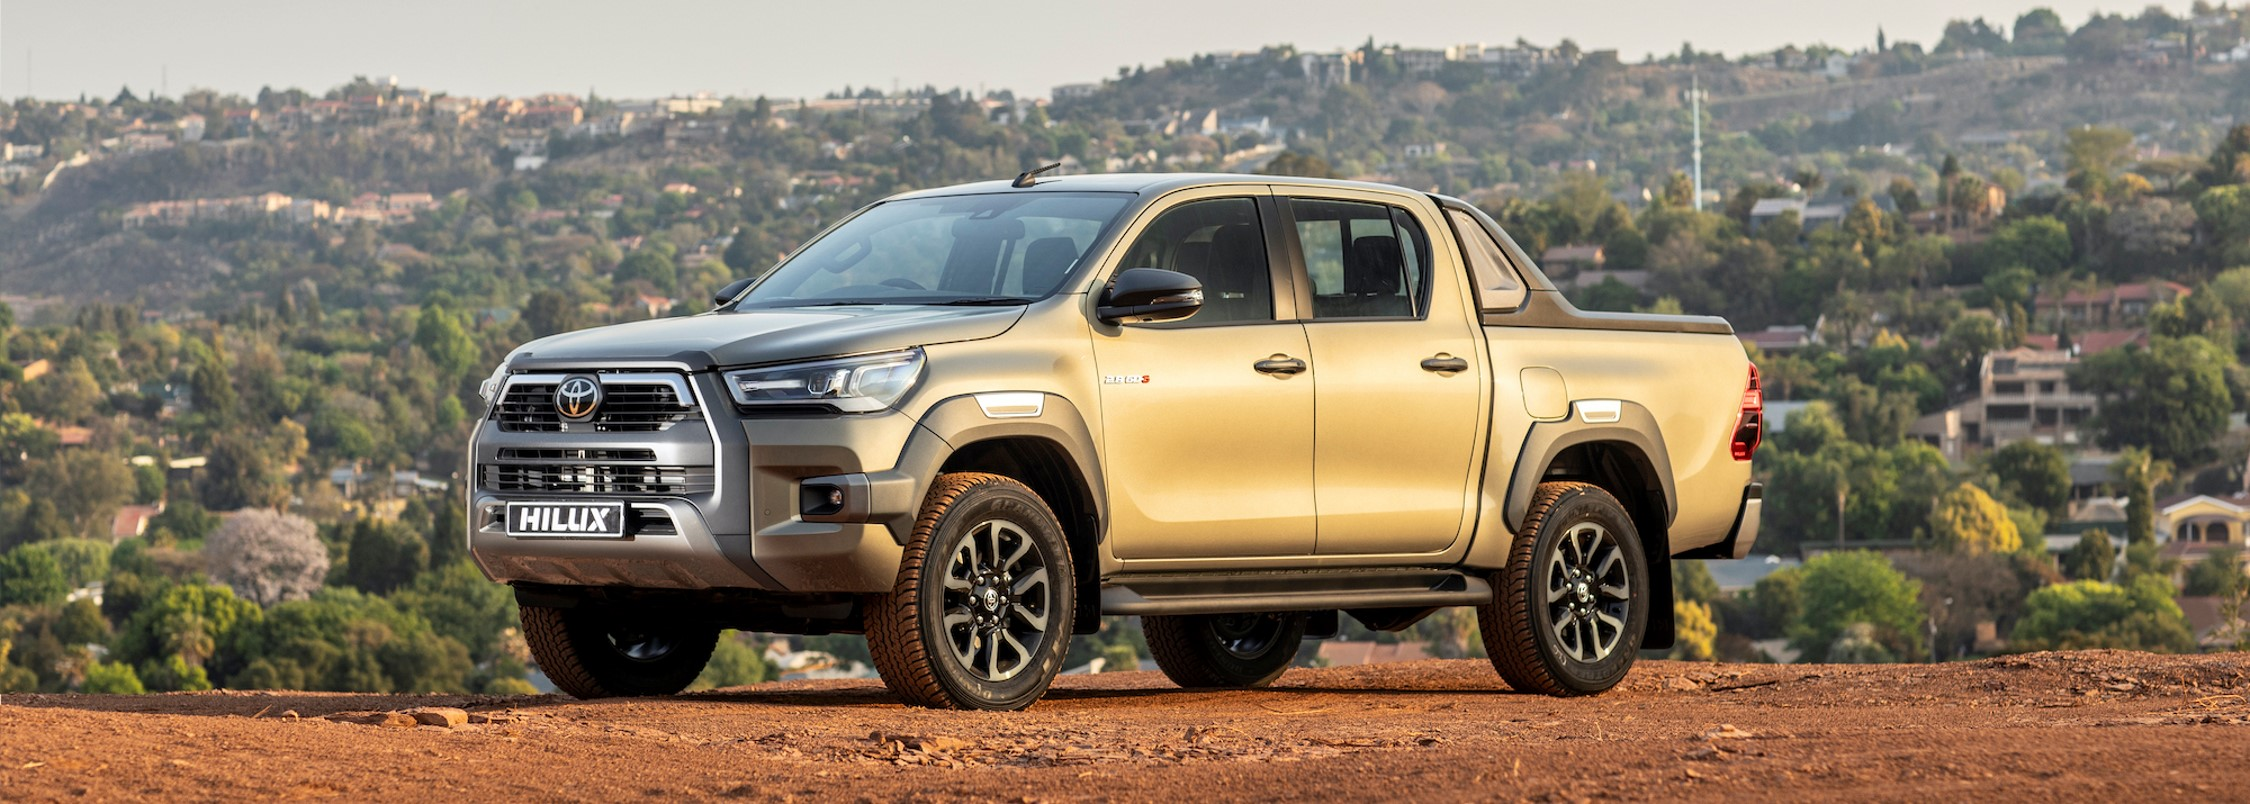 Well-rounded Toyota Hilux significantly updated